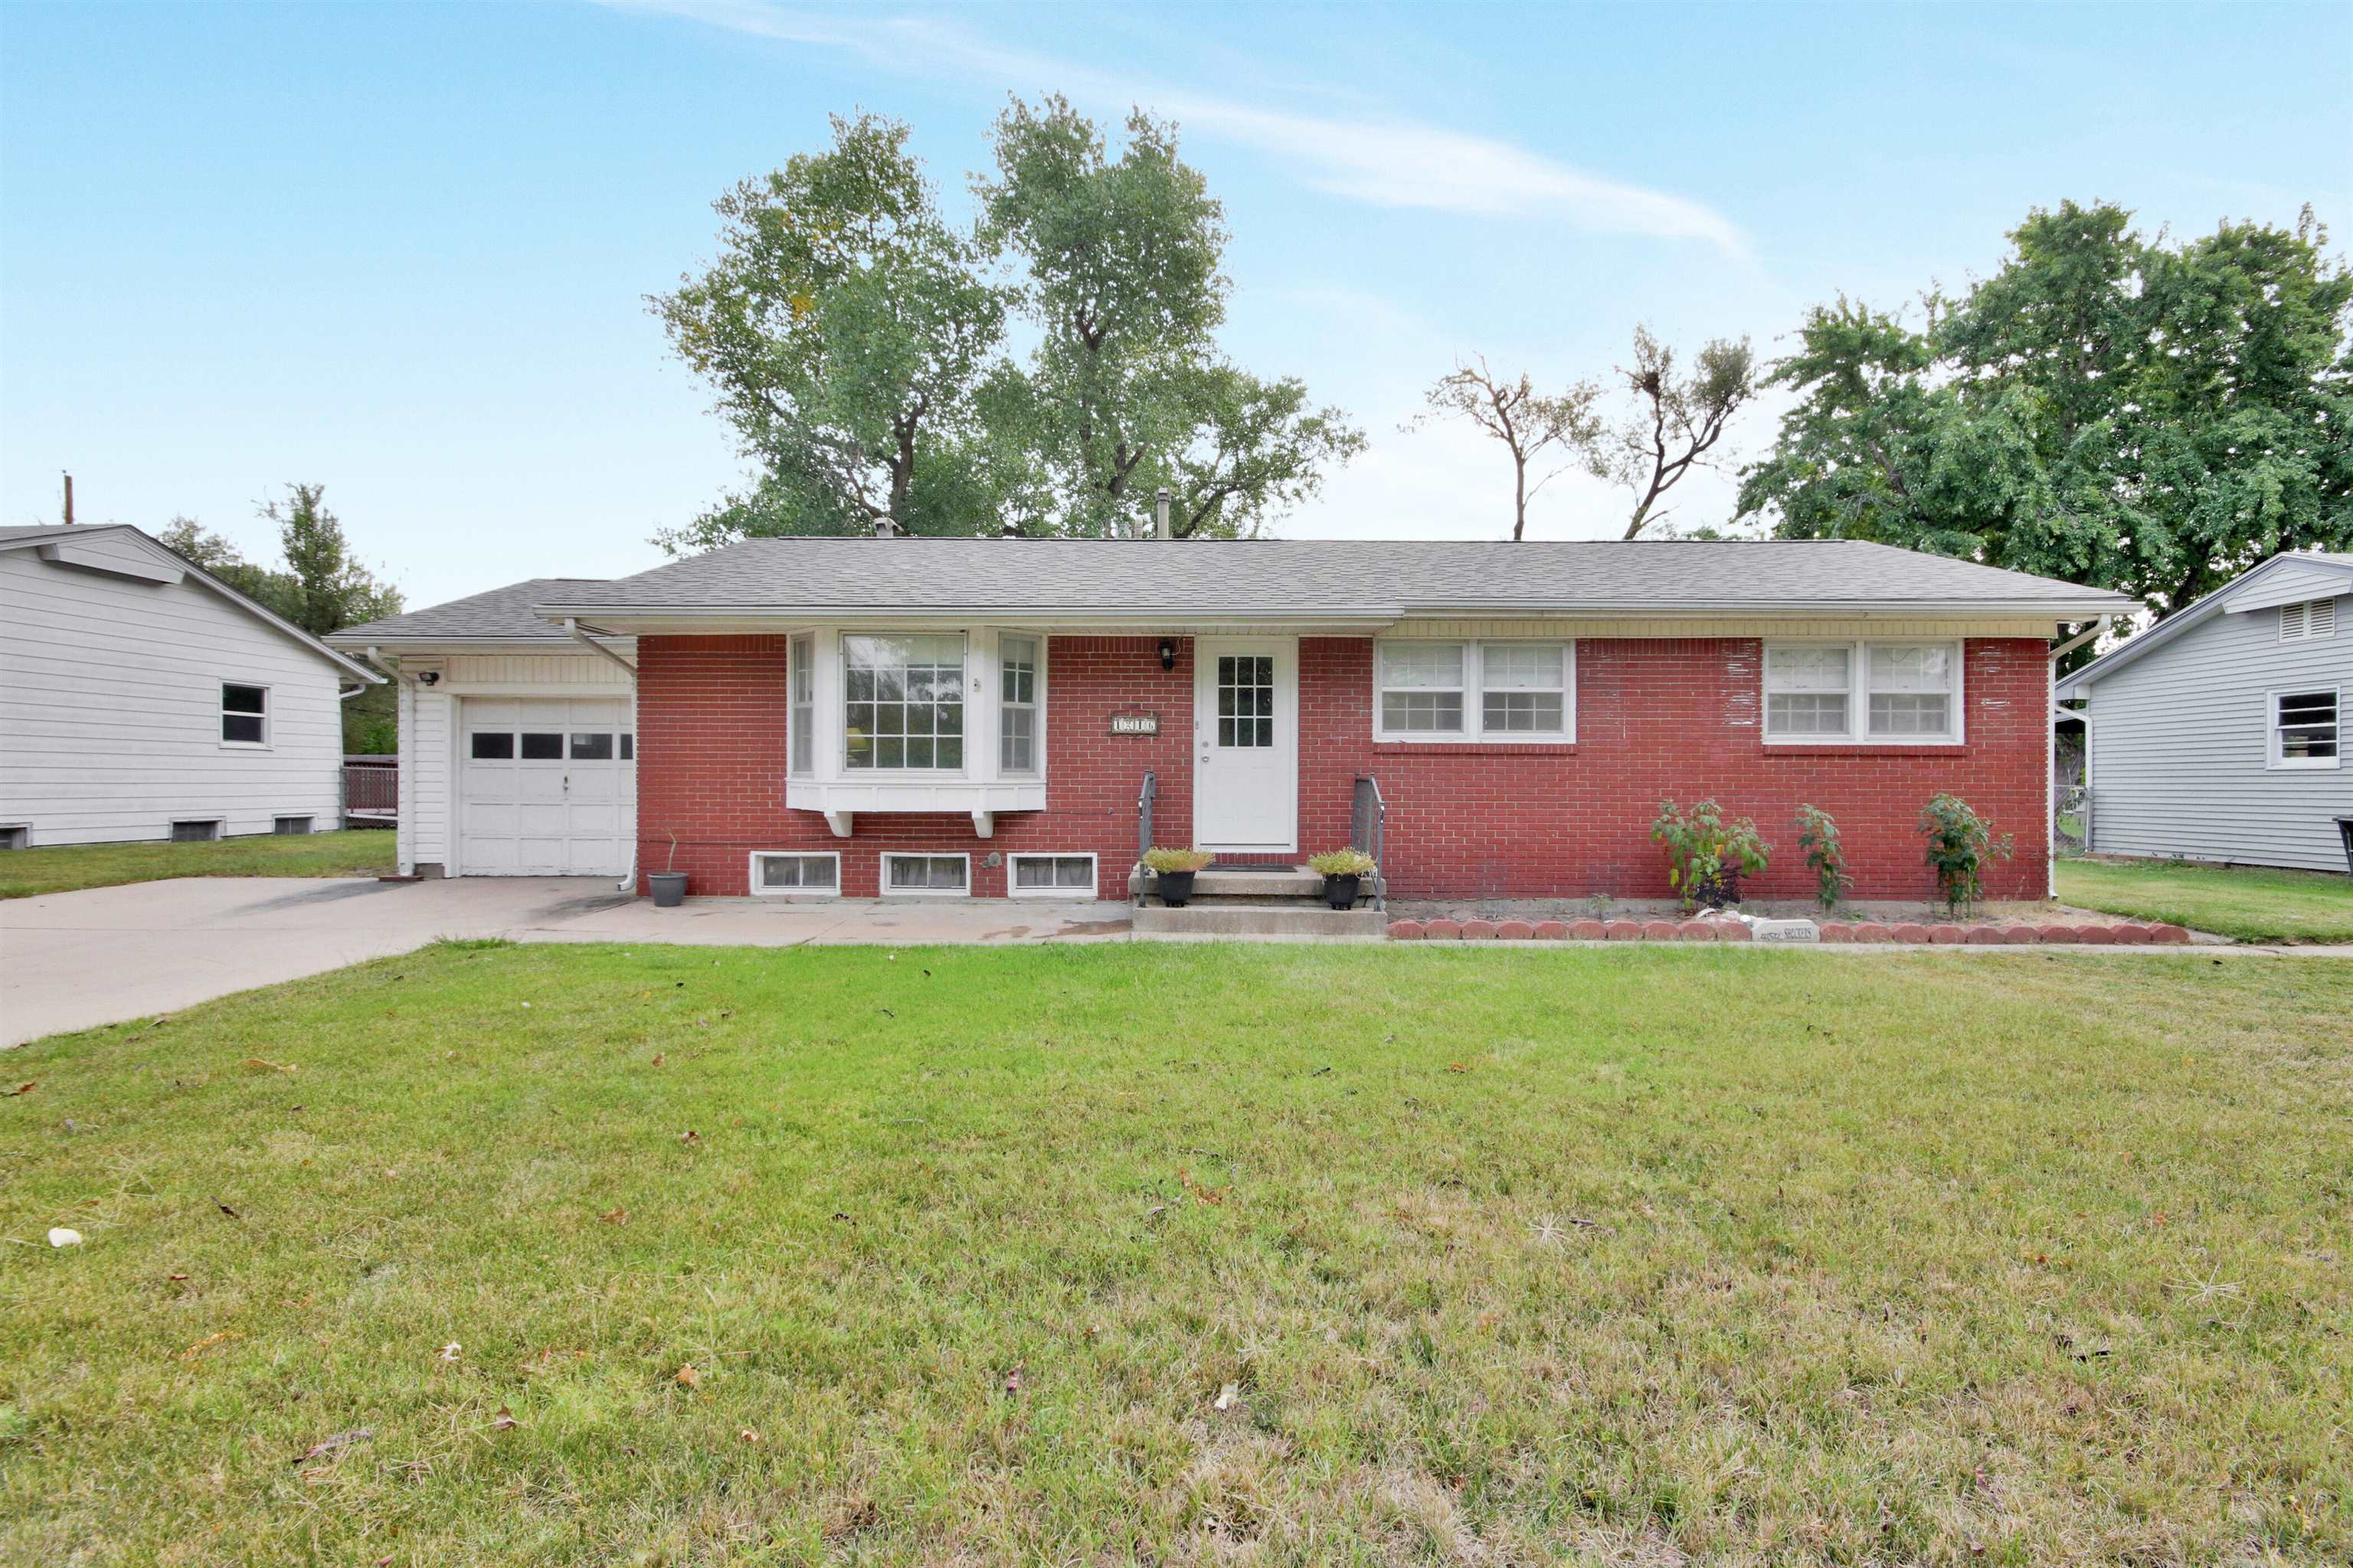 Quint essential ranch house with; three main floor bedrooms - three baths - bonus room - and so much